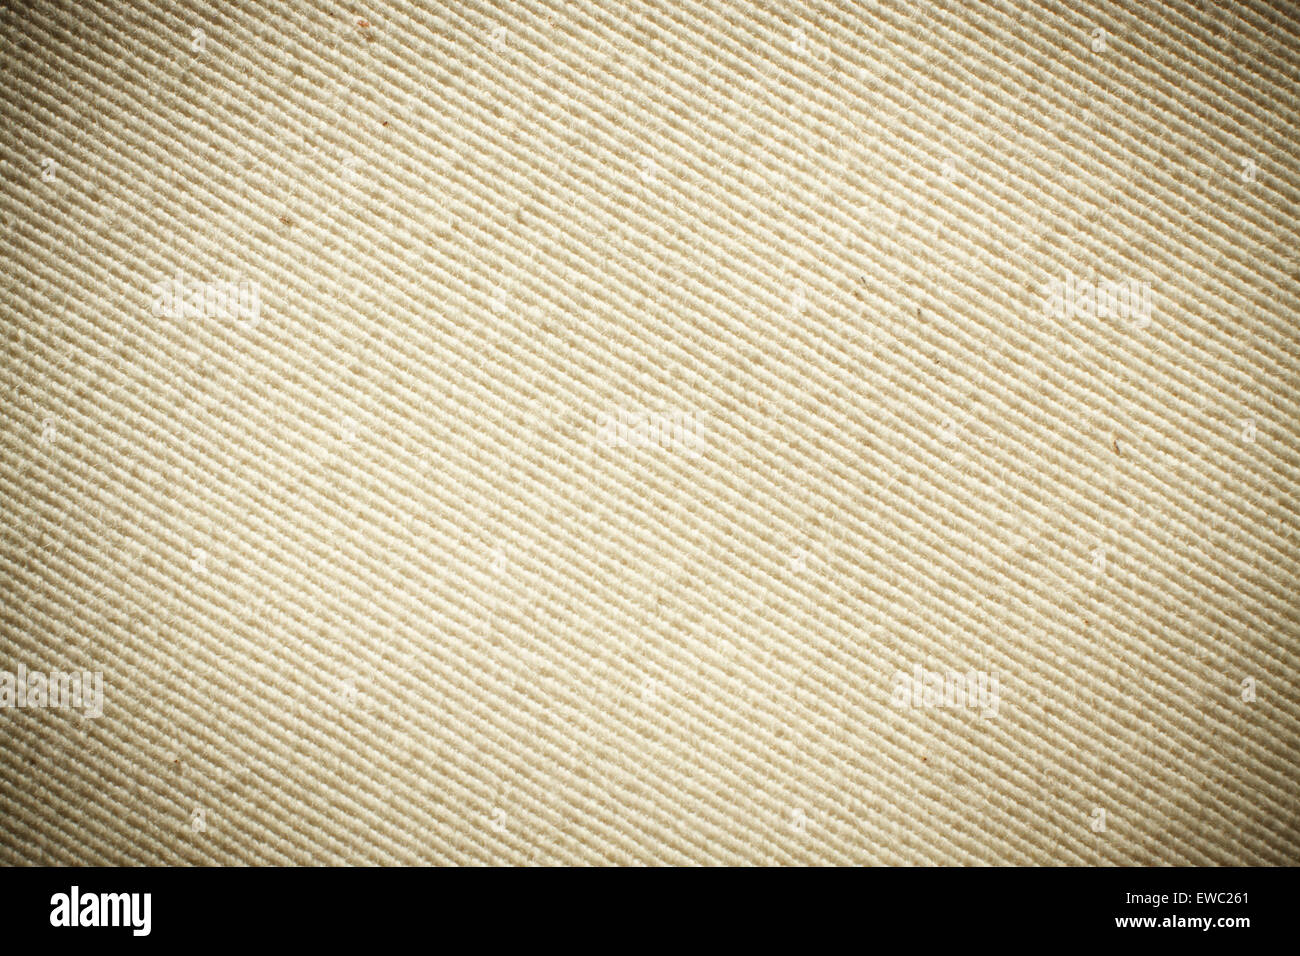 Bright fabric texture or background - Stock Image